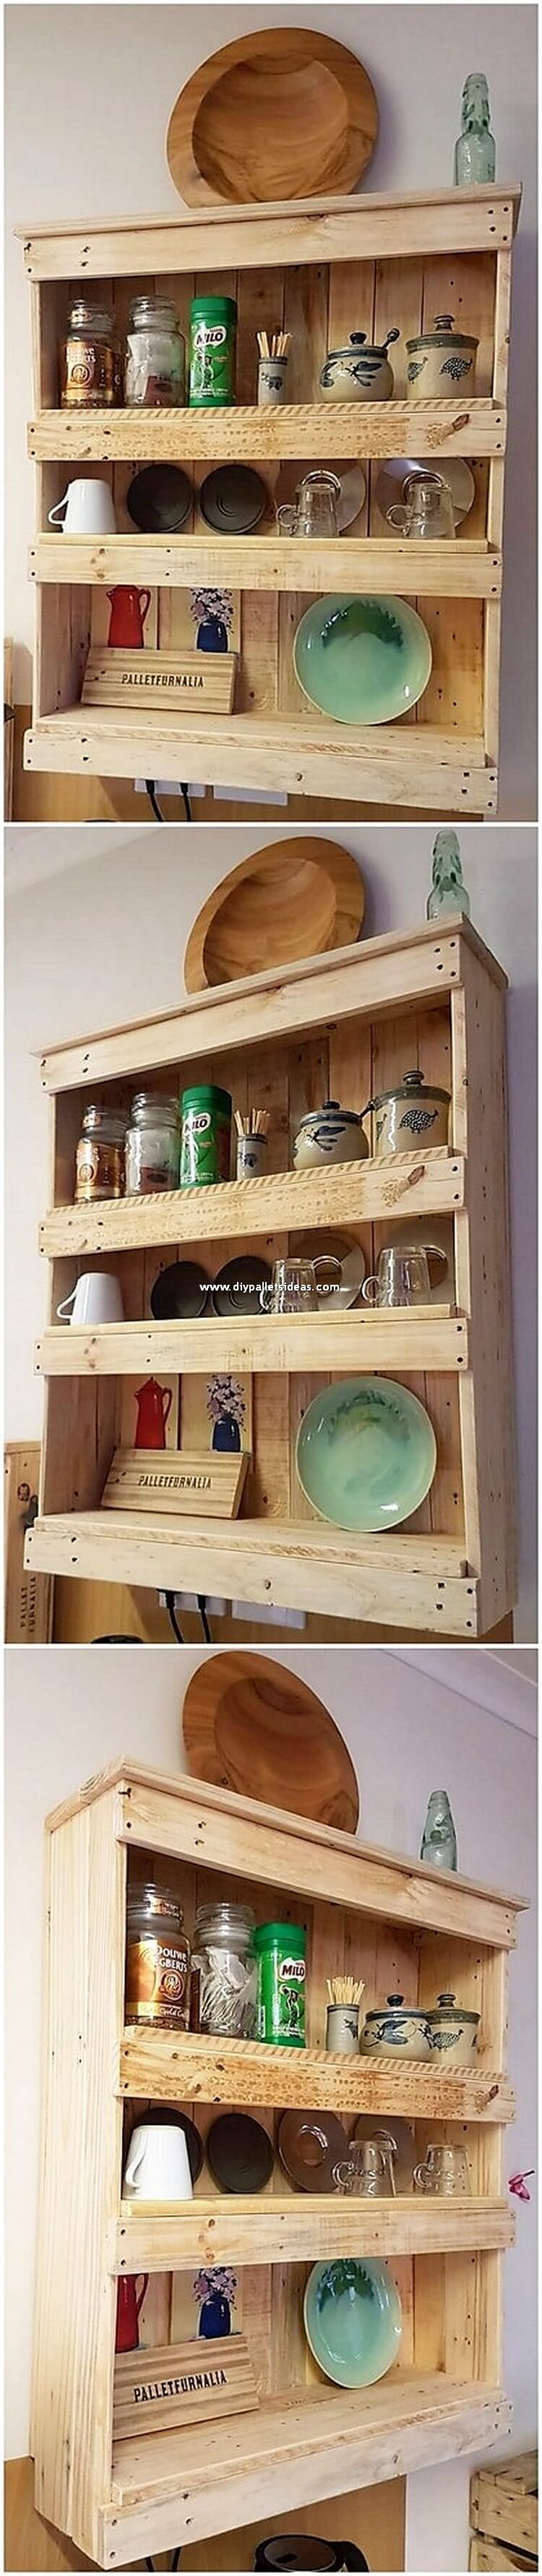 Pallet Shelving Cabinet for Kitchen